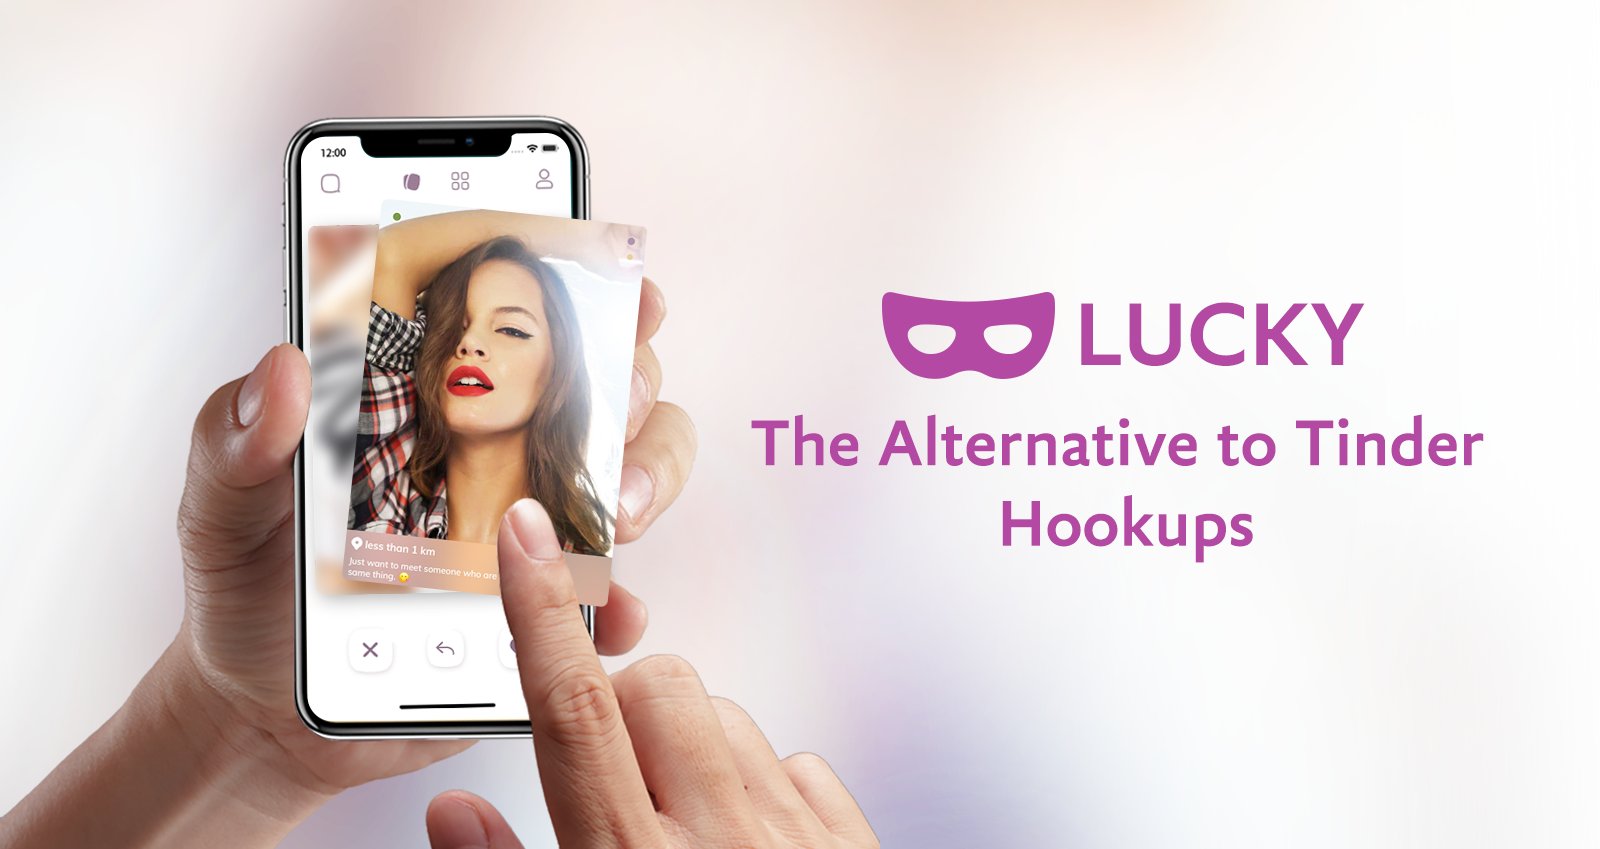 Apps like tinder but more focused on hookups